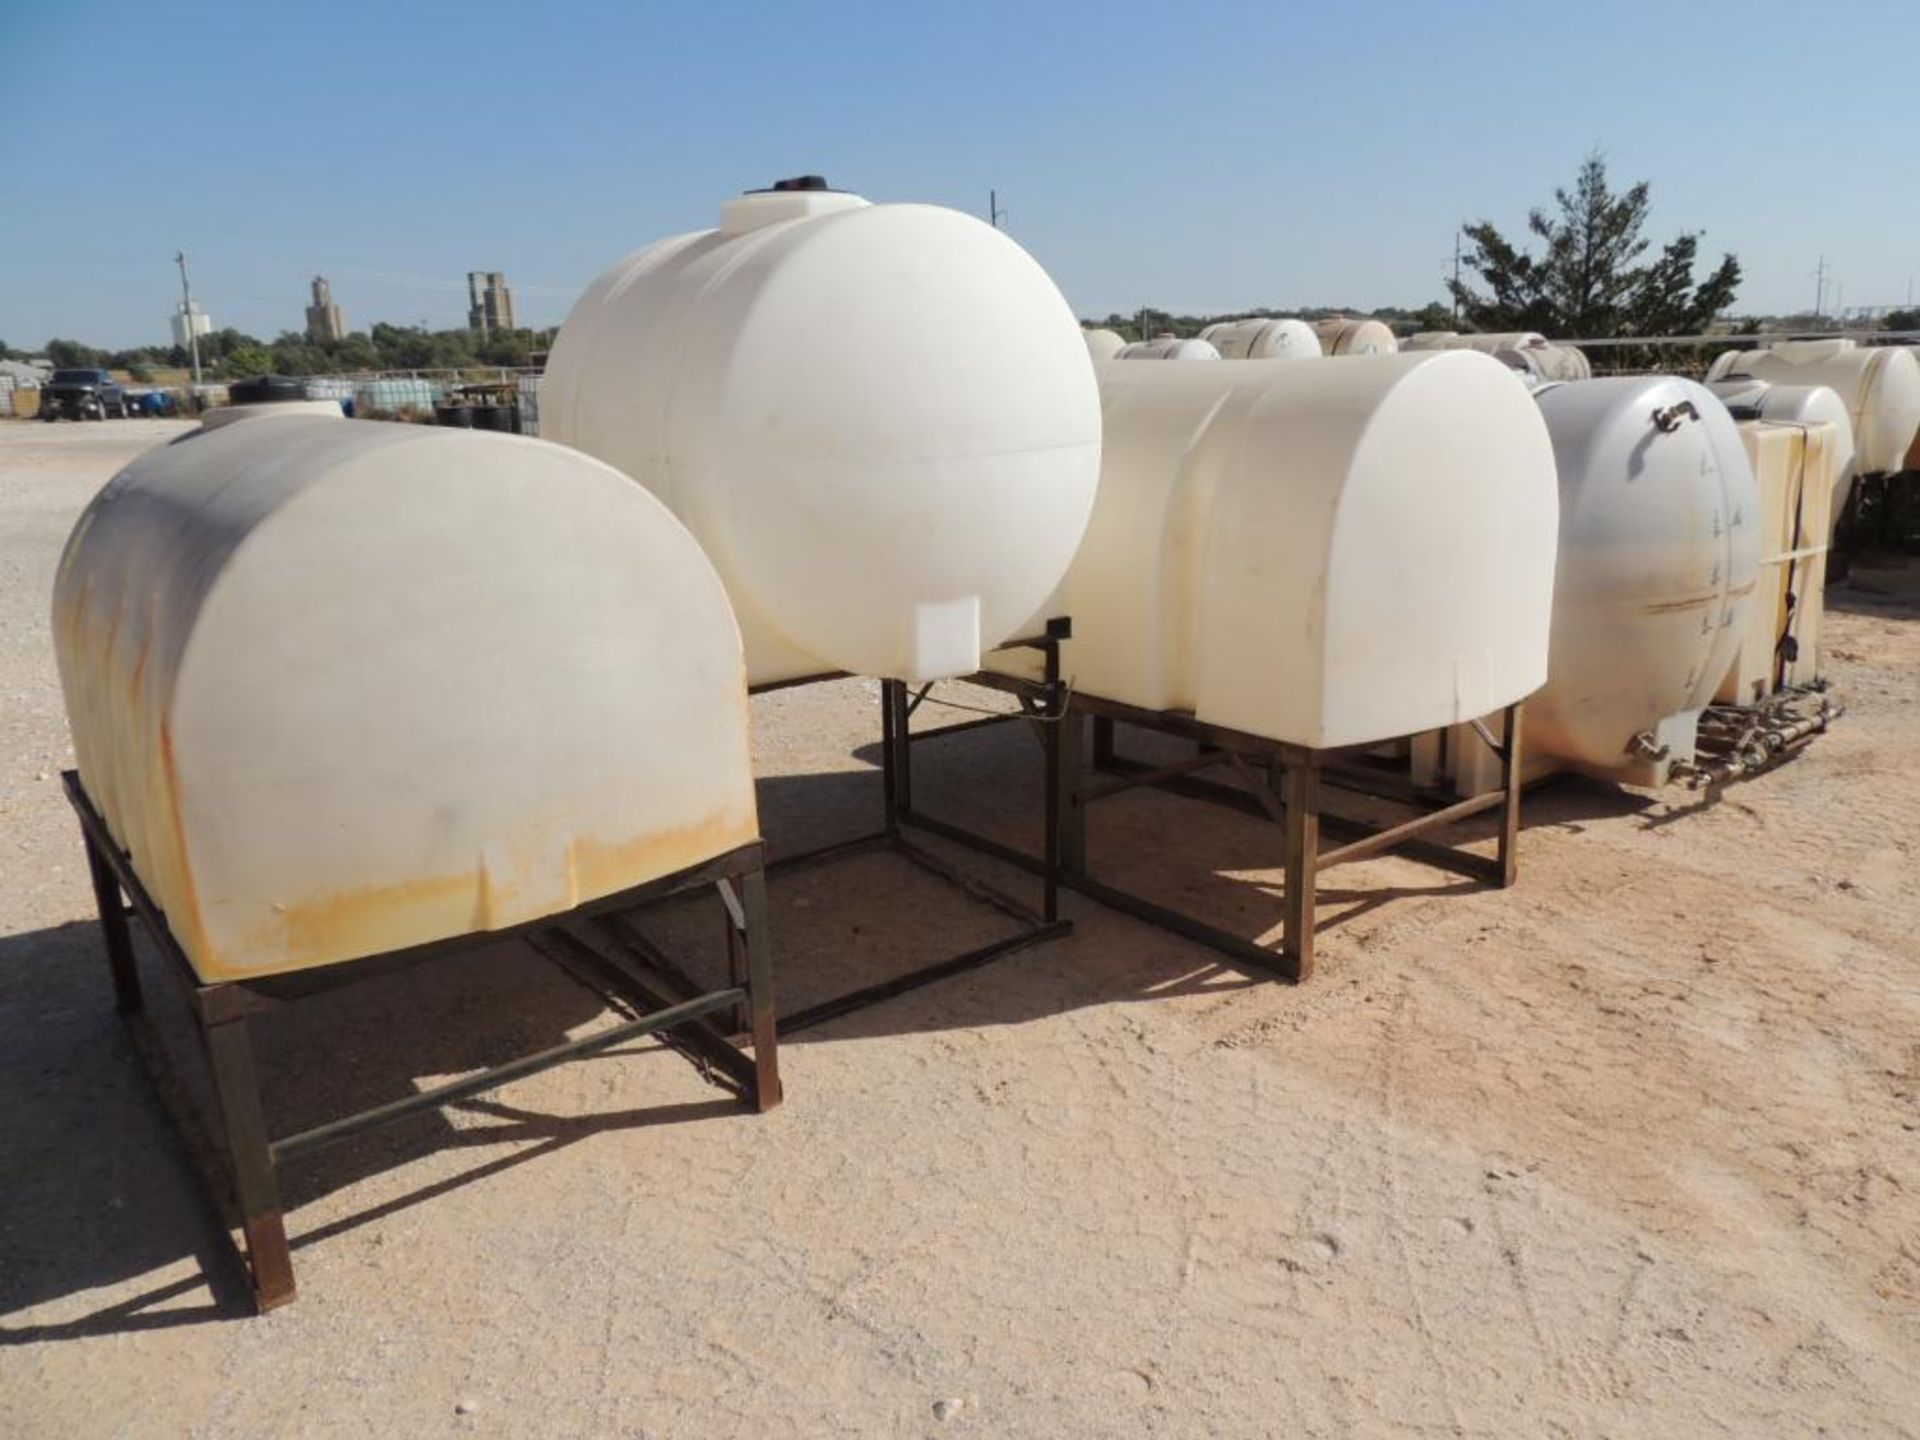 LOT: (7) Poly Tanks - (1) 535 Gallon, (3) 330 Gallon, (3) 80 Gallon (LOCATED IN HENNESSEY, OK. - - Image 2 of 3